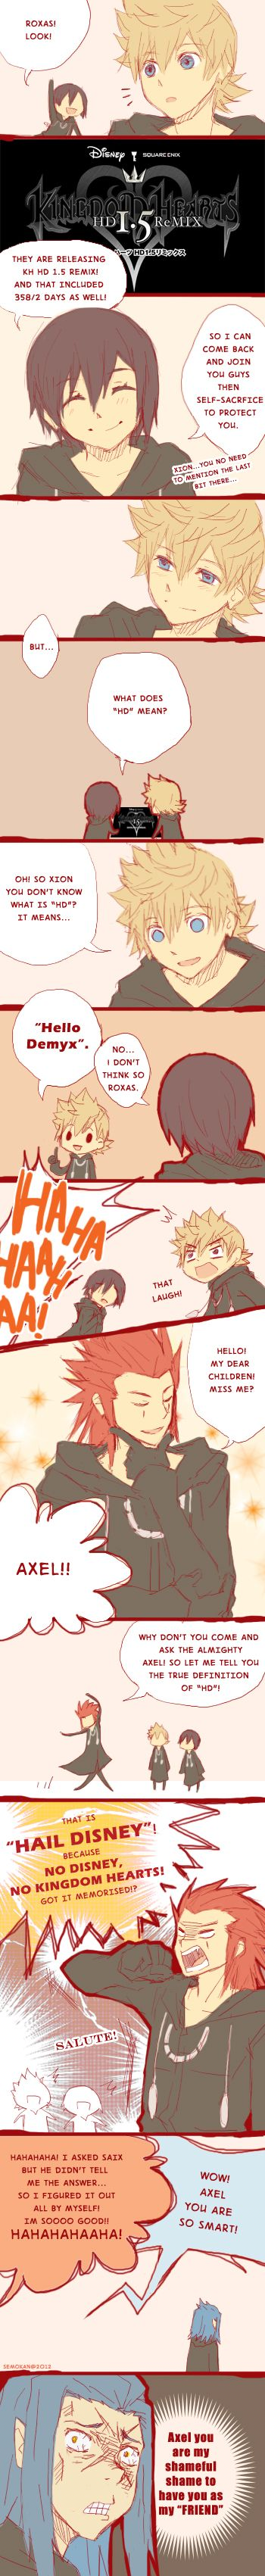 The Trio Talk about KH HD1.5Remix by semokan.deviantart.com on @deviantART